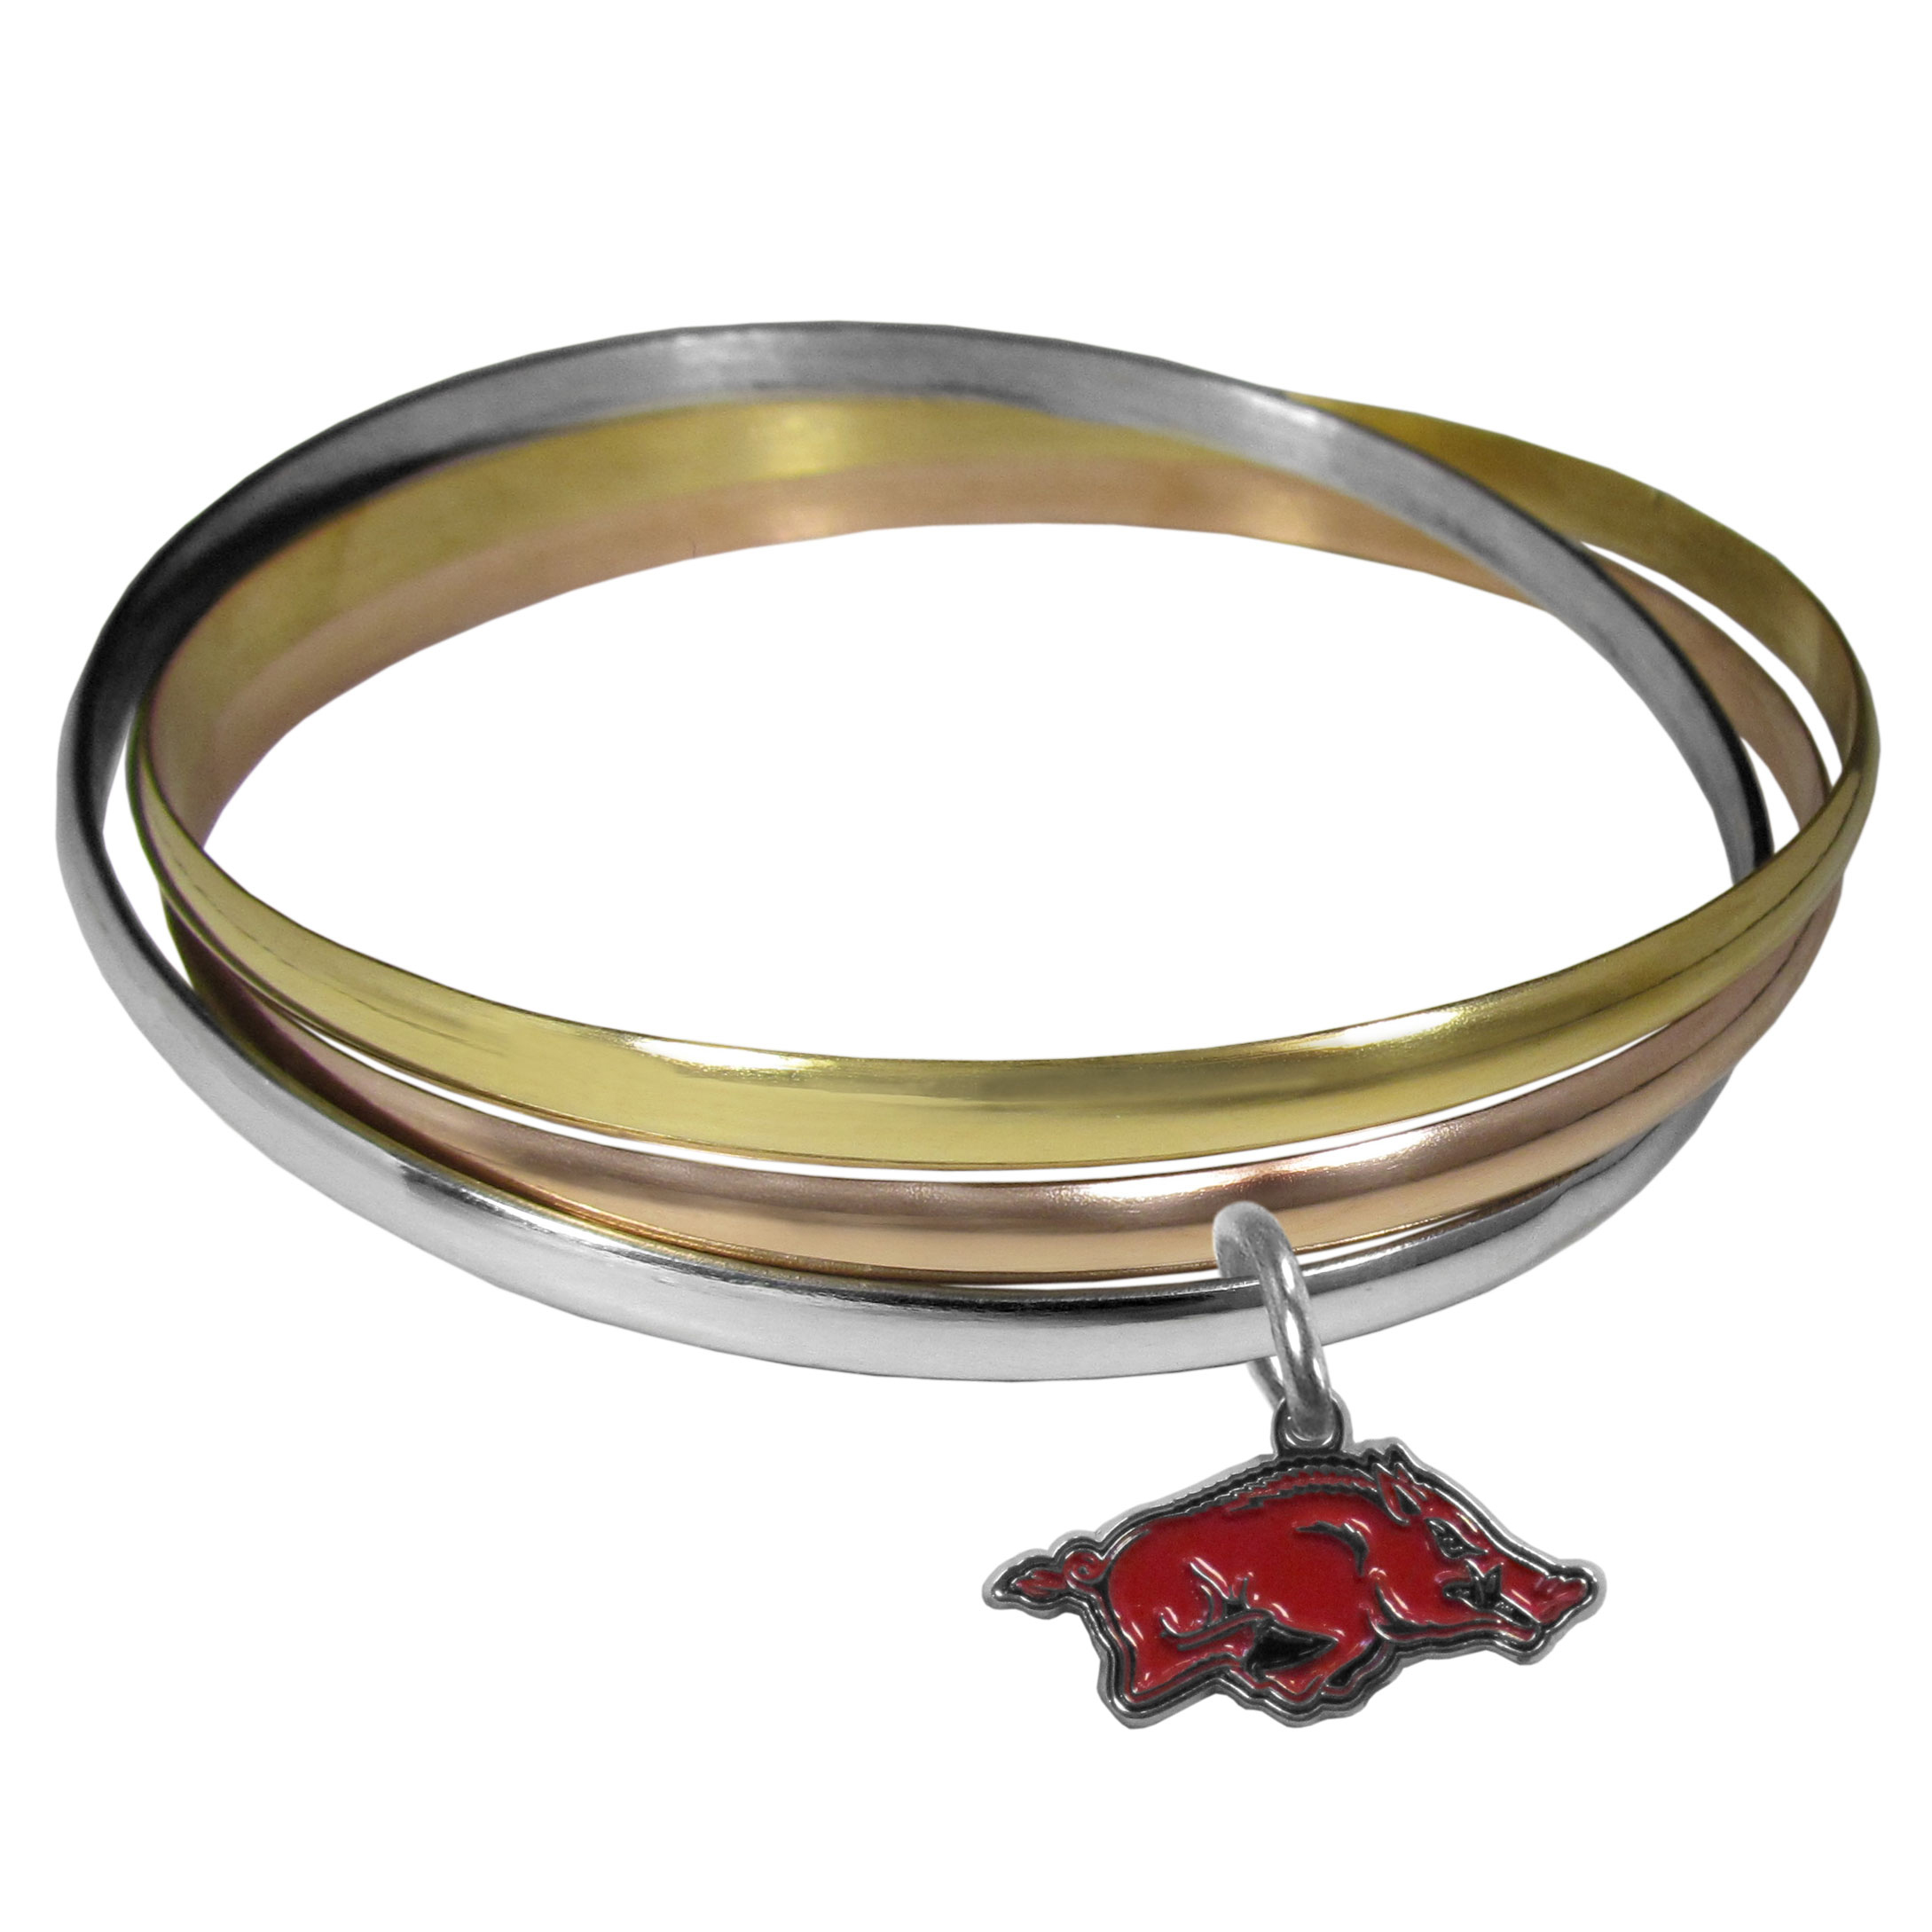 Arkansas Razorbacks Tri-color Bangle Bracelet - These beautiful bangles come in a interlocking style and feature a fully cast Arkansas Razorbacks charm with enameled team colors. The bracelet has a silver toned bangle, gold tone bangle and brass toned bangle.